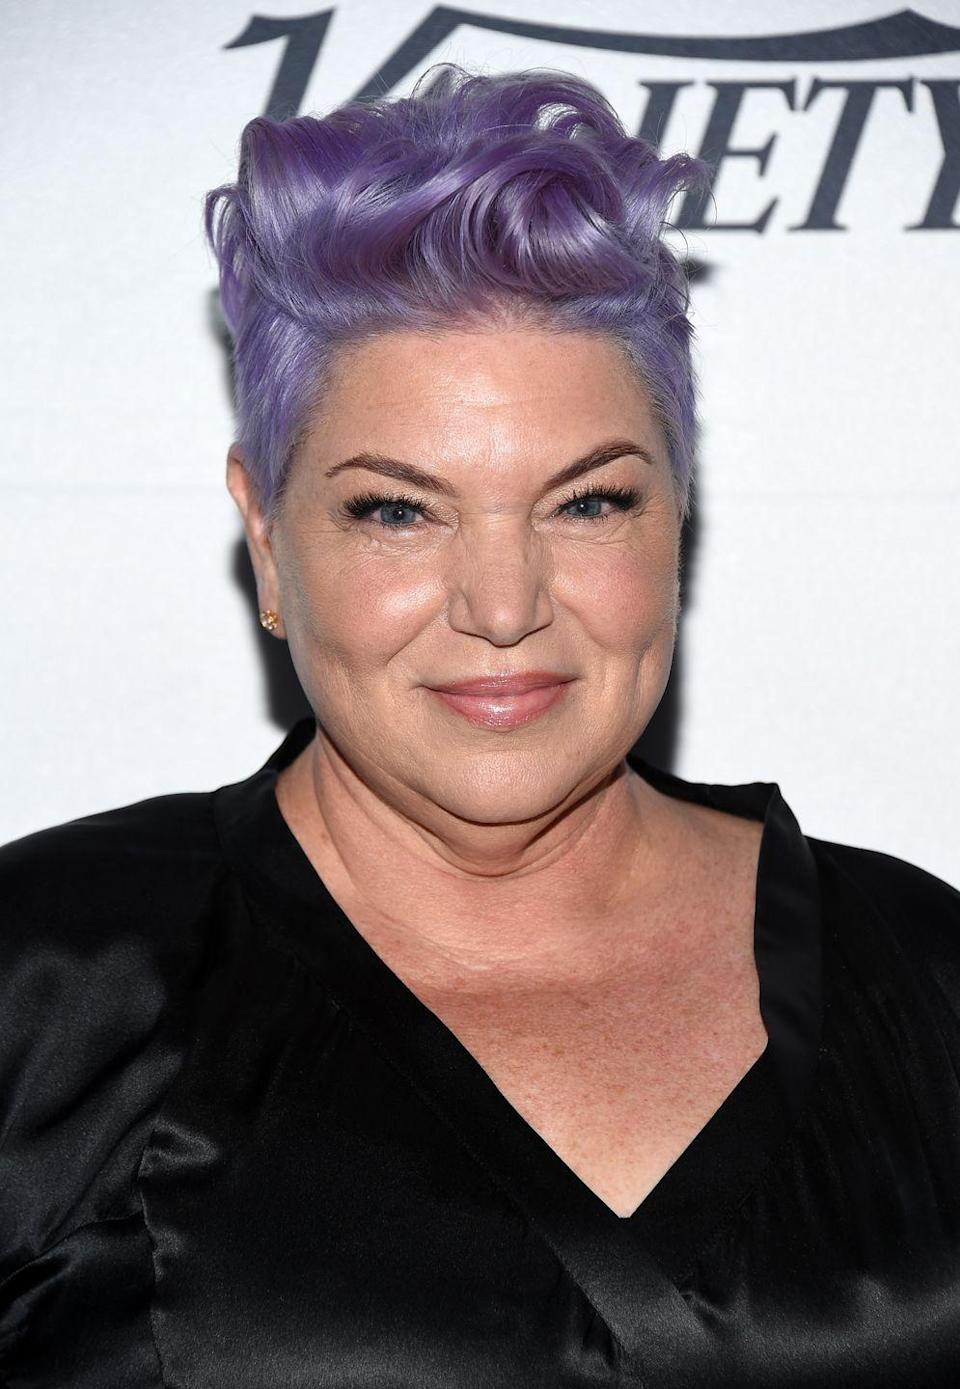 "<p>Now 53, Cohn's now rocking some <a href=""https://www.goodhousekeeping.com/beauty/hair/a33631/what-is-colombre-hair-trend/"" rel=""nofollow noopener"" target=""_blank"" data-ylk=""slk:cool purple hair"" class=""link rapid-noclick-resp"">cool purple hair</a>. If you're wondering why you haven't seen her on the small screen for a while, it's because she's doing work behind-the-scenes. From 2002 to 2015, Cohn voiced Velma Dinkley for the <em>Scooby Doo</em> franchise.<br></p>"